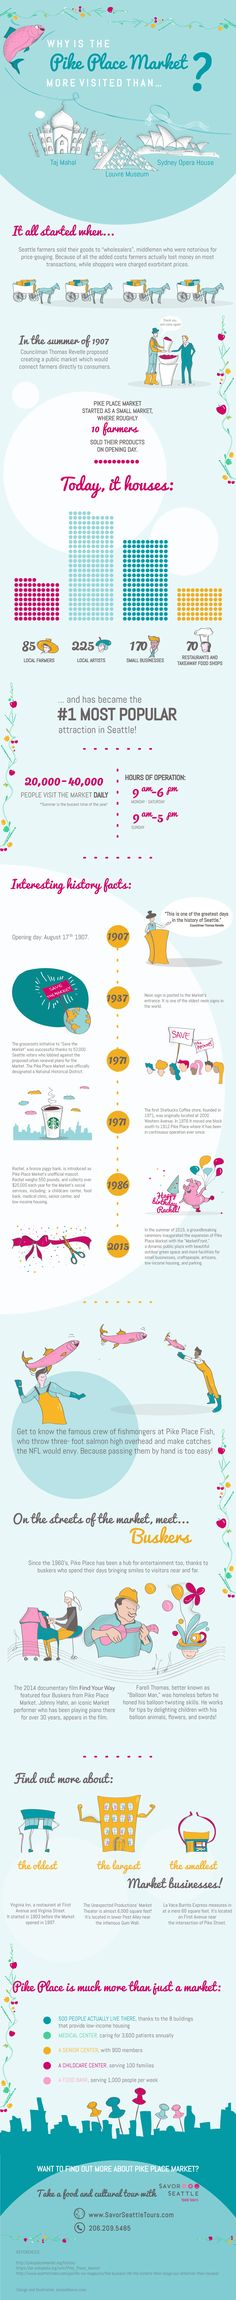 Pike Place Market Infographic